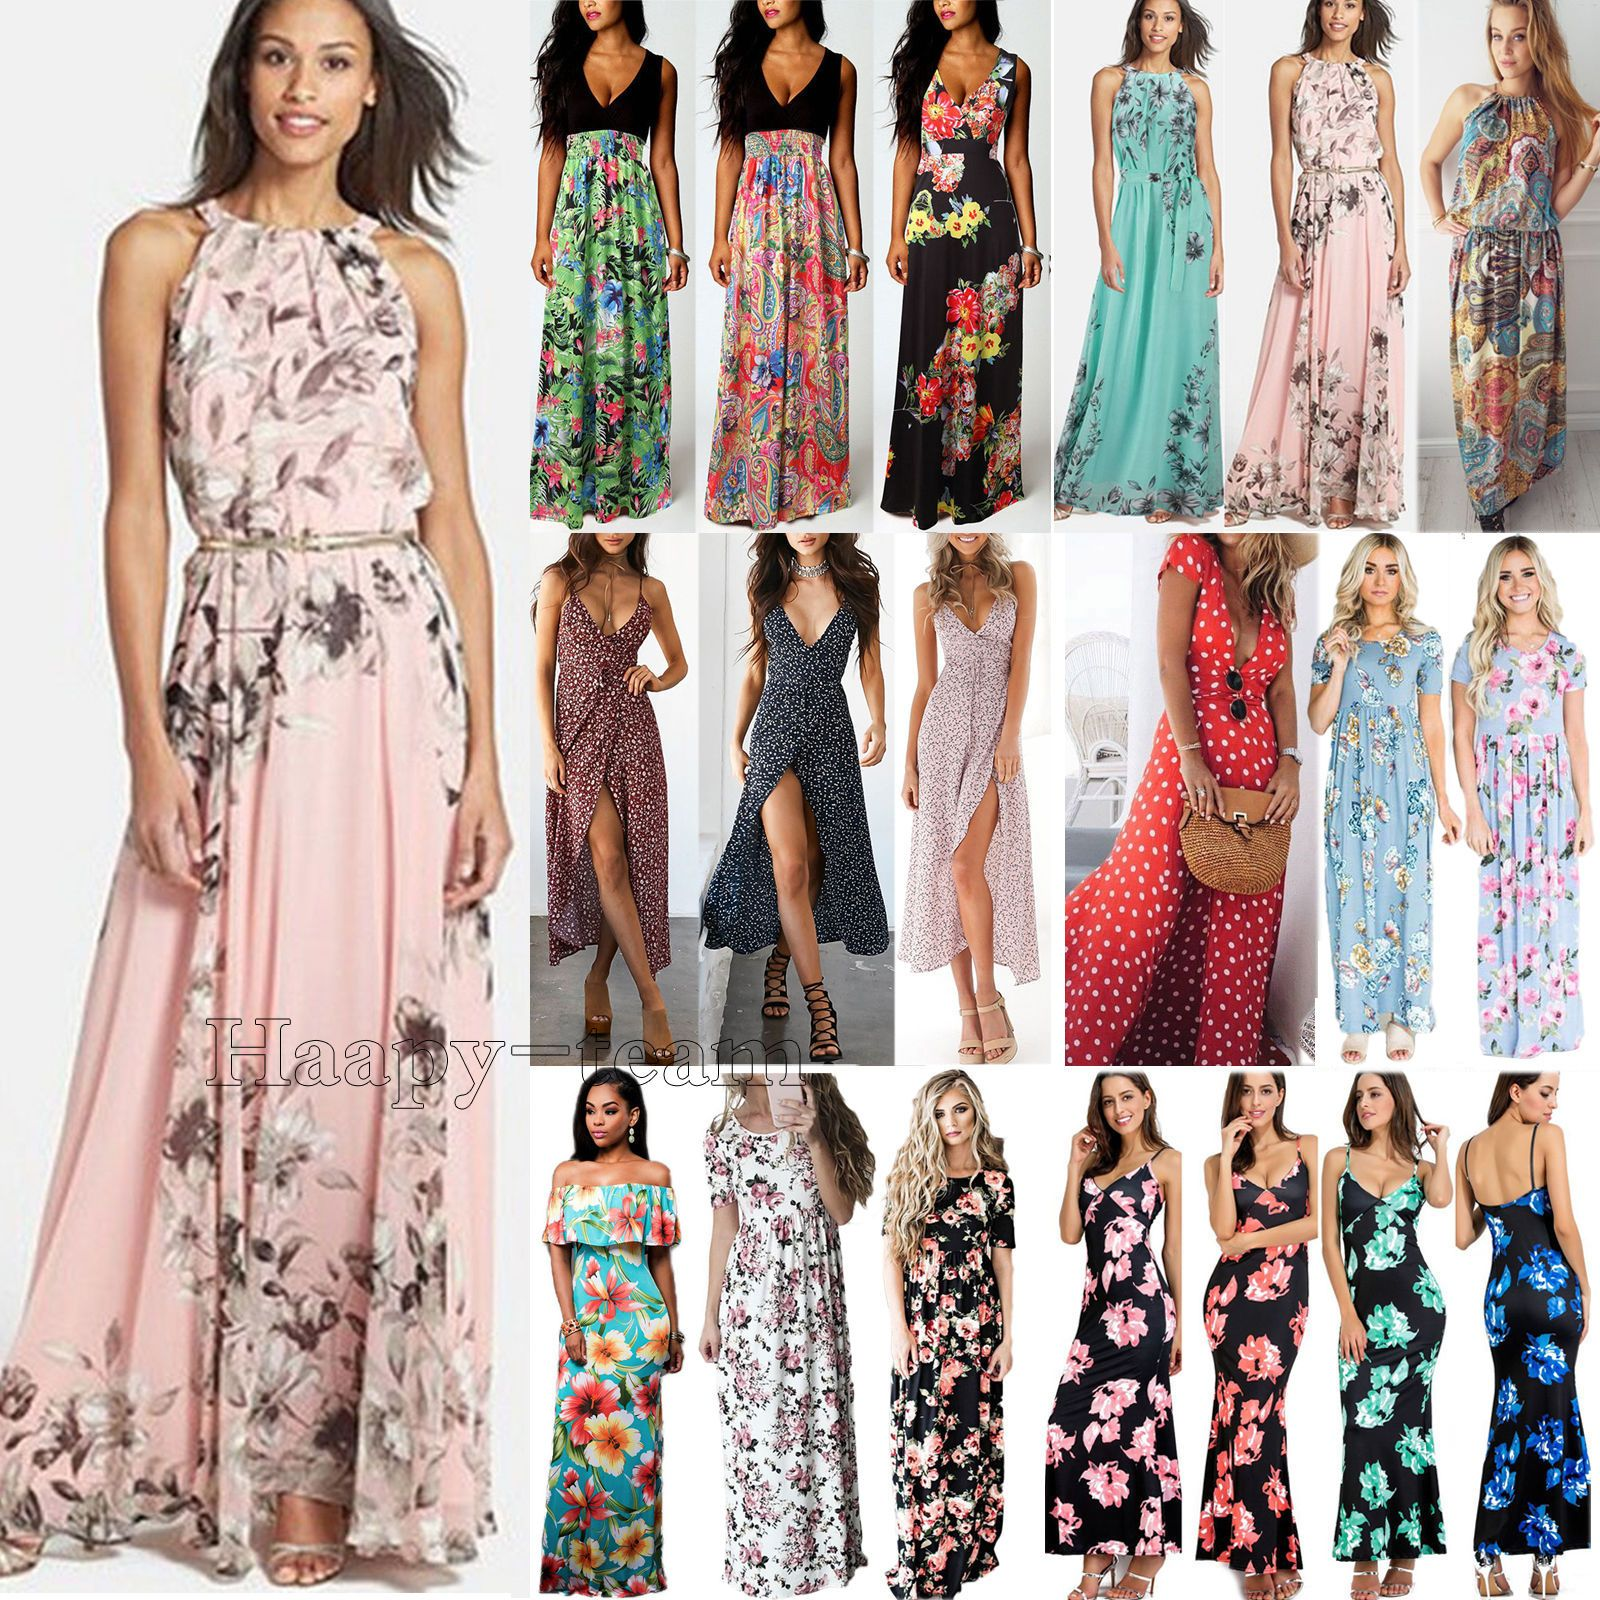 ffdb4f42db007 Women Boho Floral Long Maxi Dress Cocktail Party Evening Summer Beach  Sundress | eBay